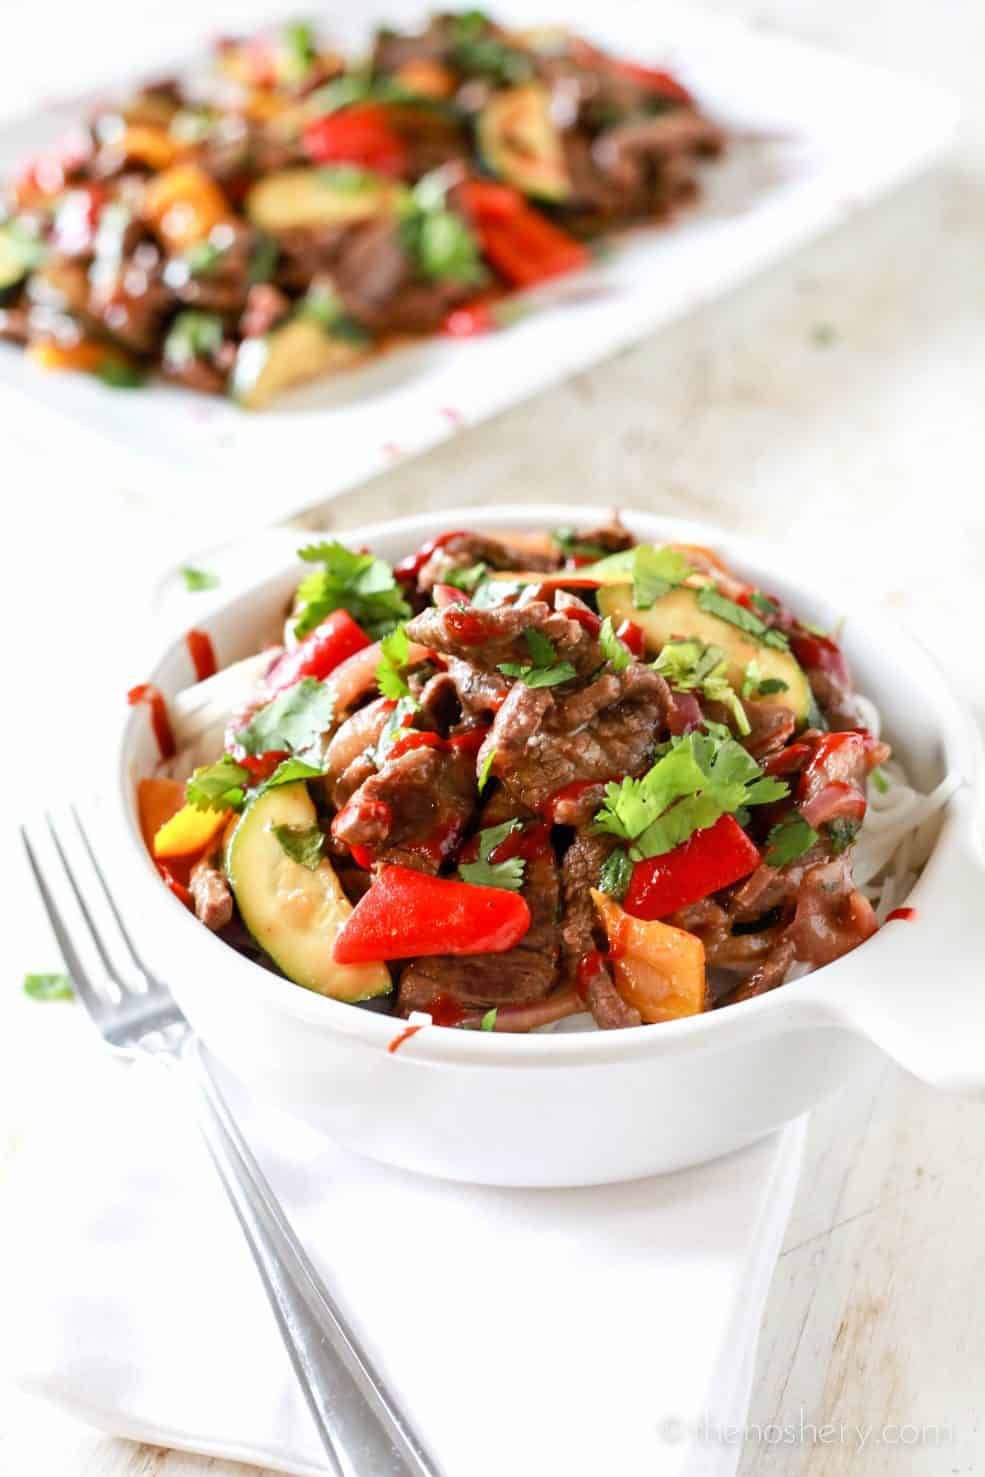 Spicy Beef and Peppers Takeout | TheNoshery.com